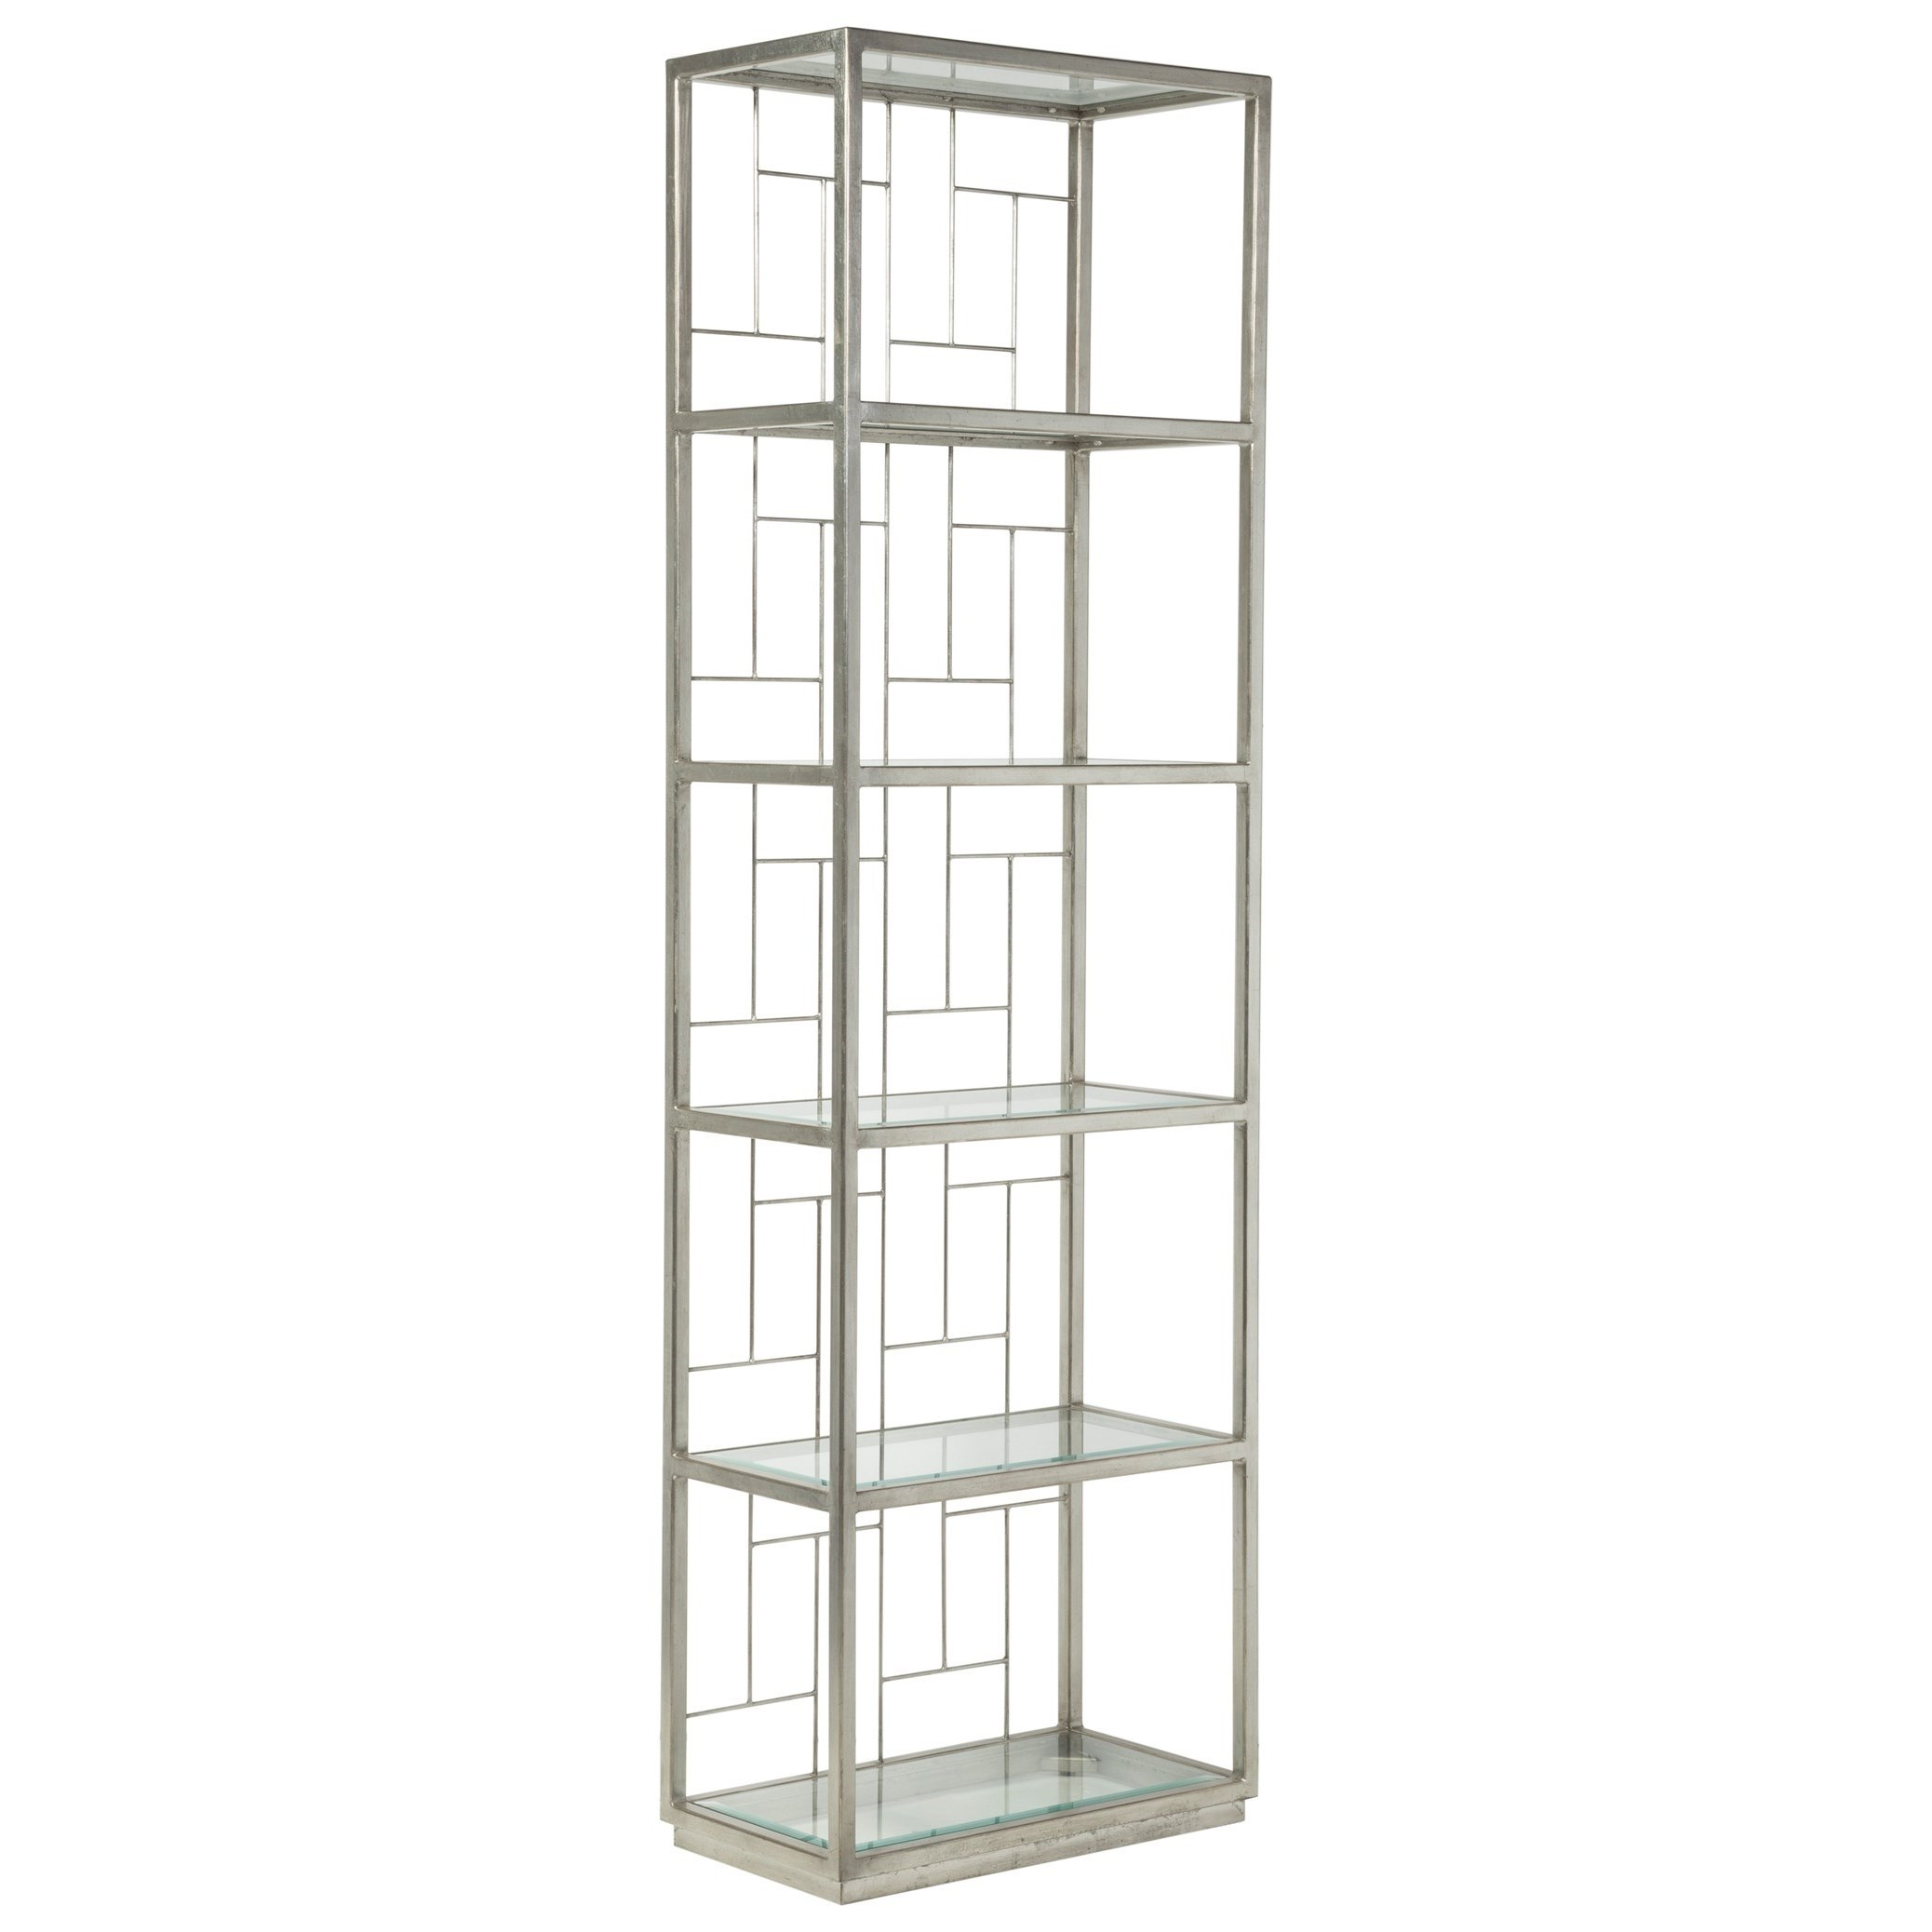 Metal Designs Honeycomb Mid Geo Slim Etagere by Artistica at Baer's Furniture